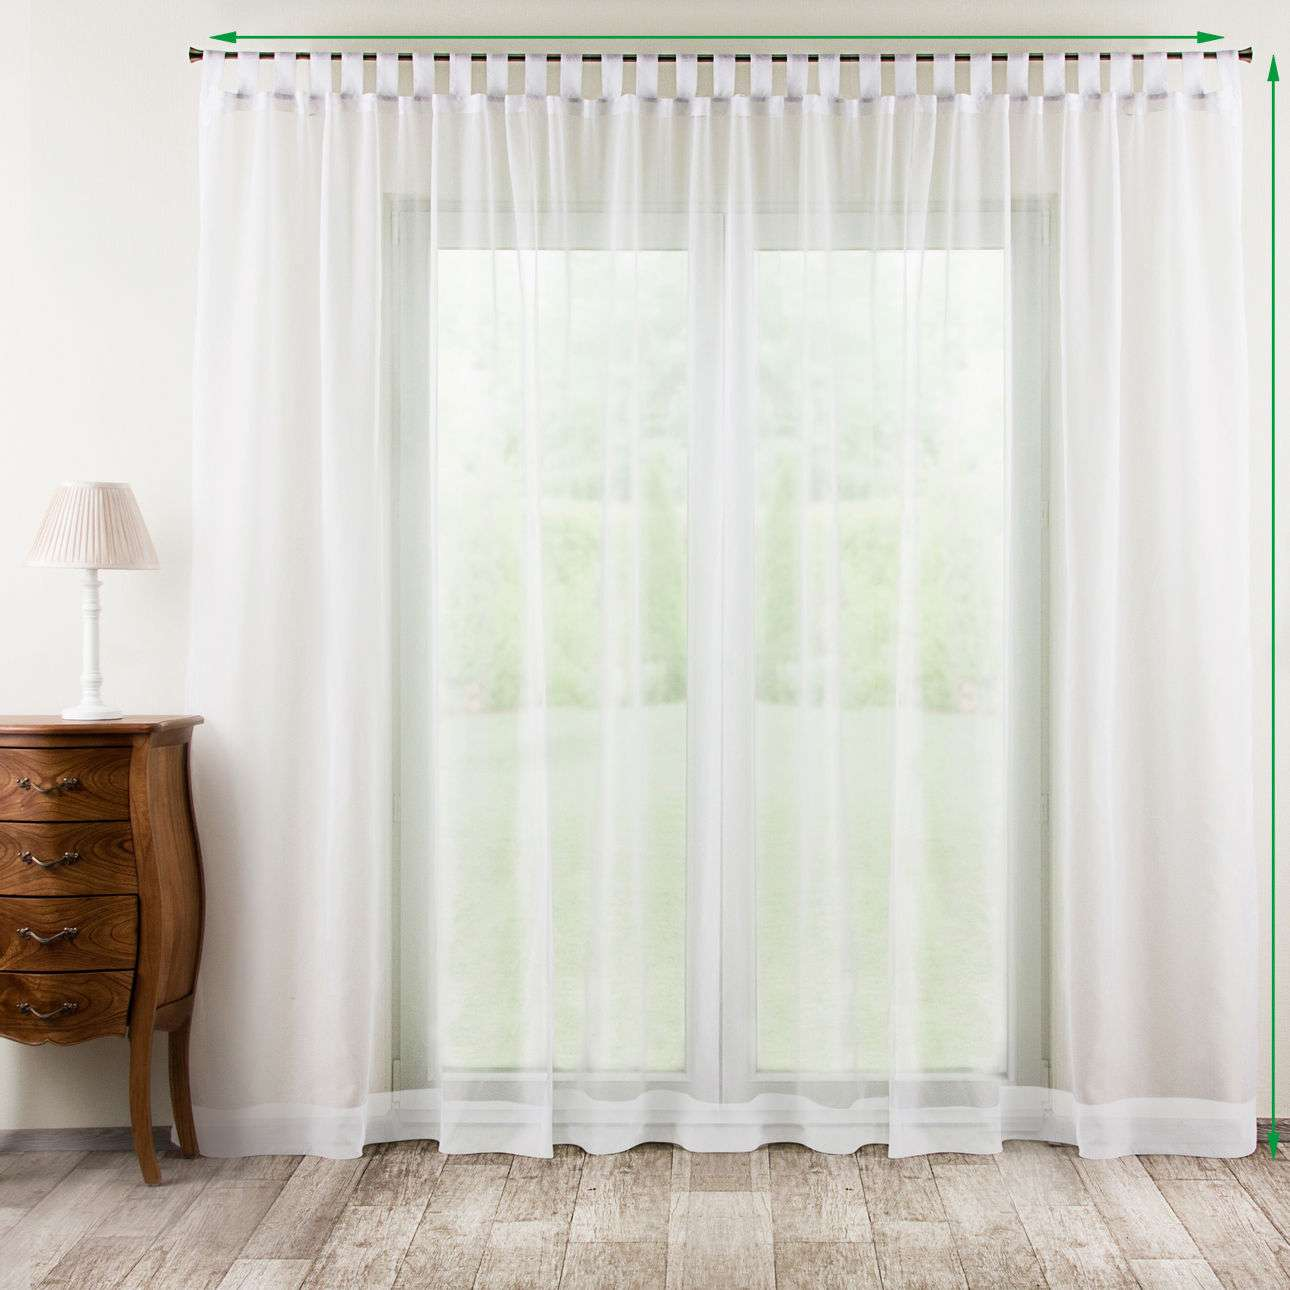 Tab top voile/net curtains in collection Voile, fabric: 900-00